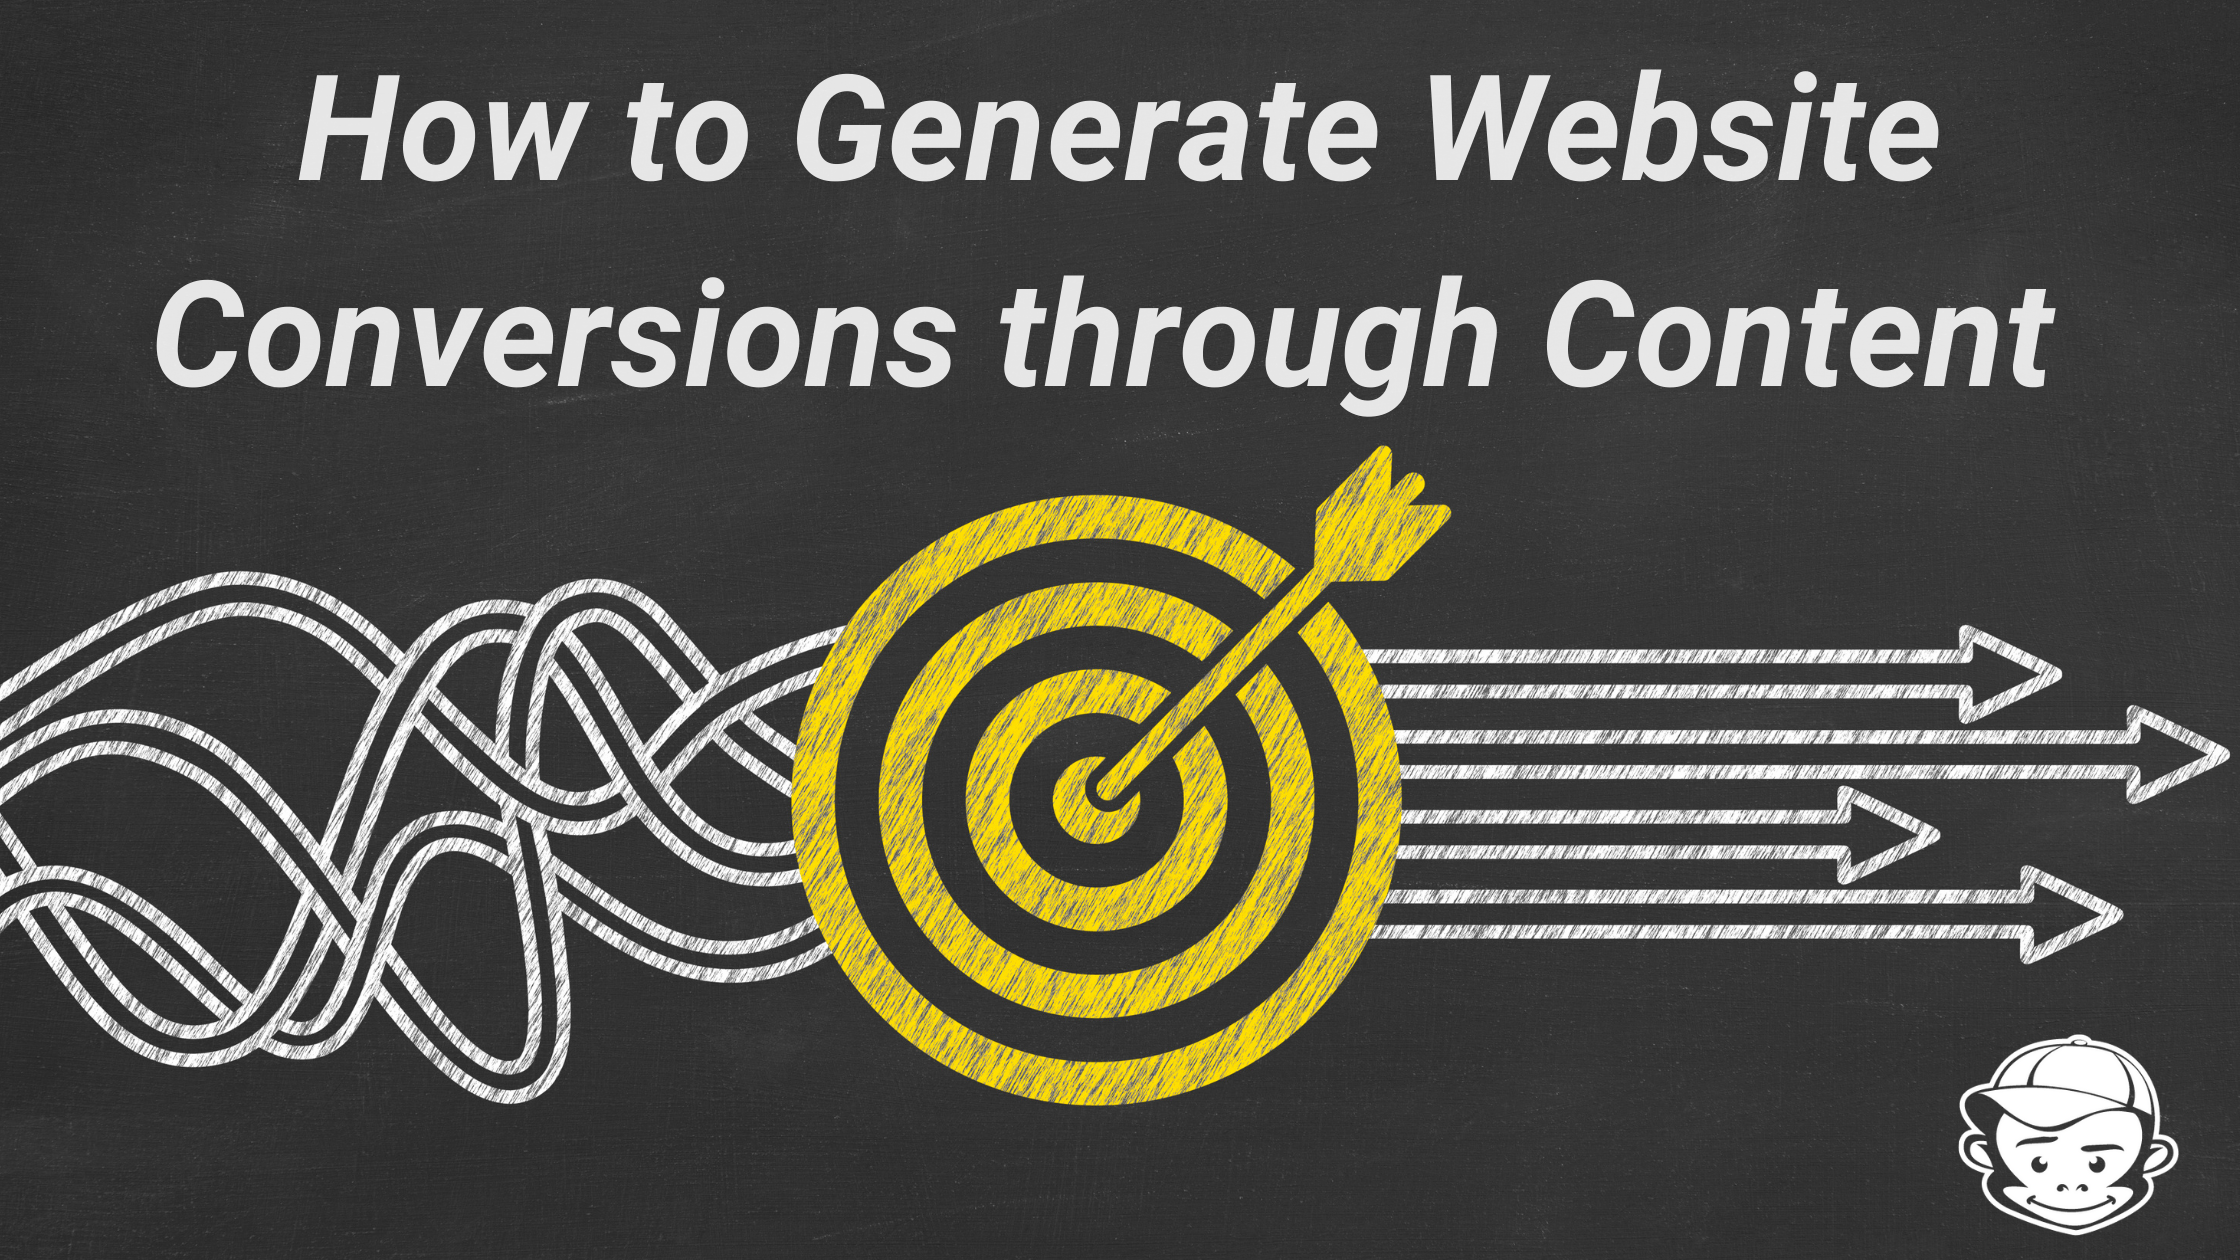 How to Generate Website Conversions through Content